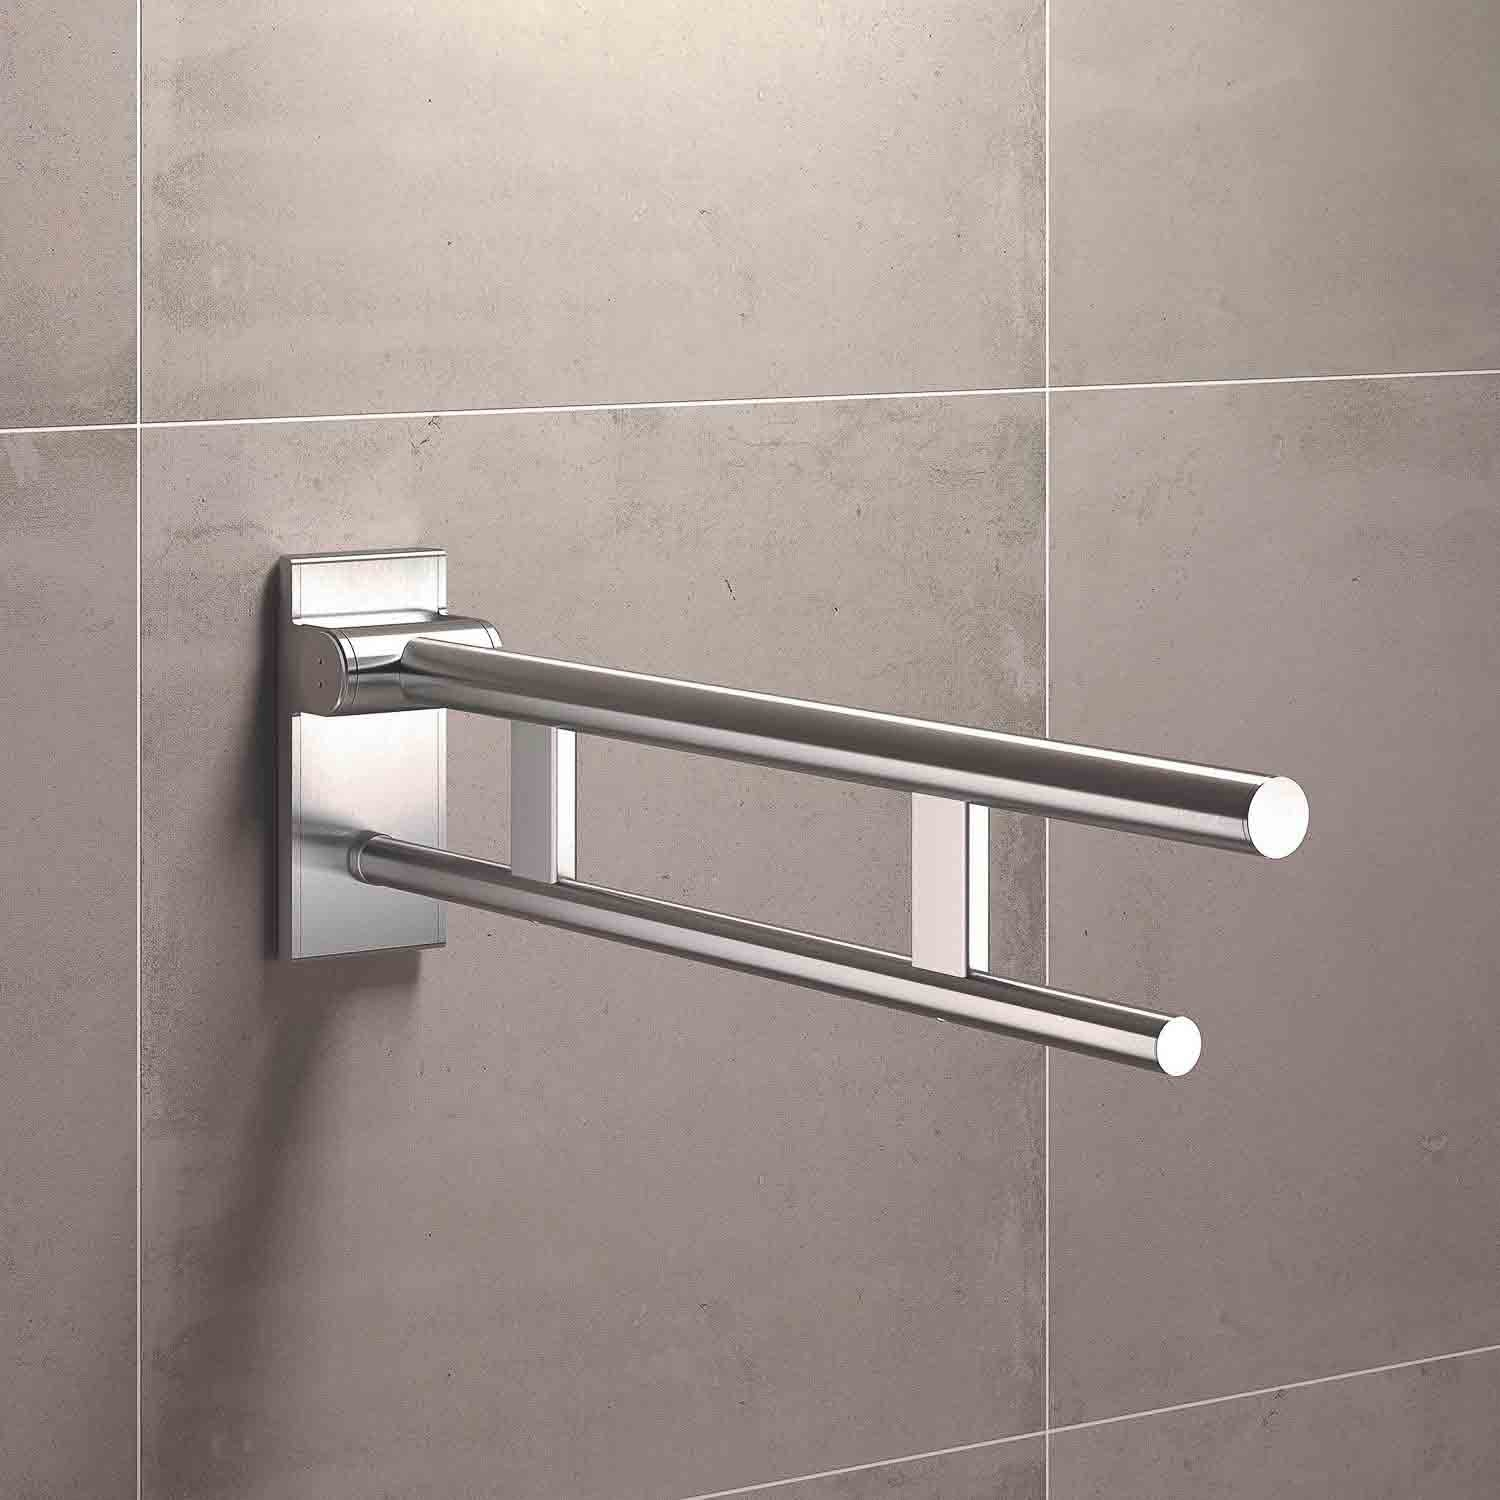 600mm Freestyle Removable Hinged Grab Rail with a satin steel finish lifestyle image